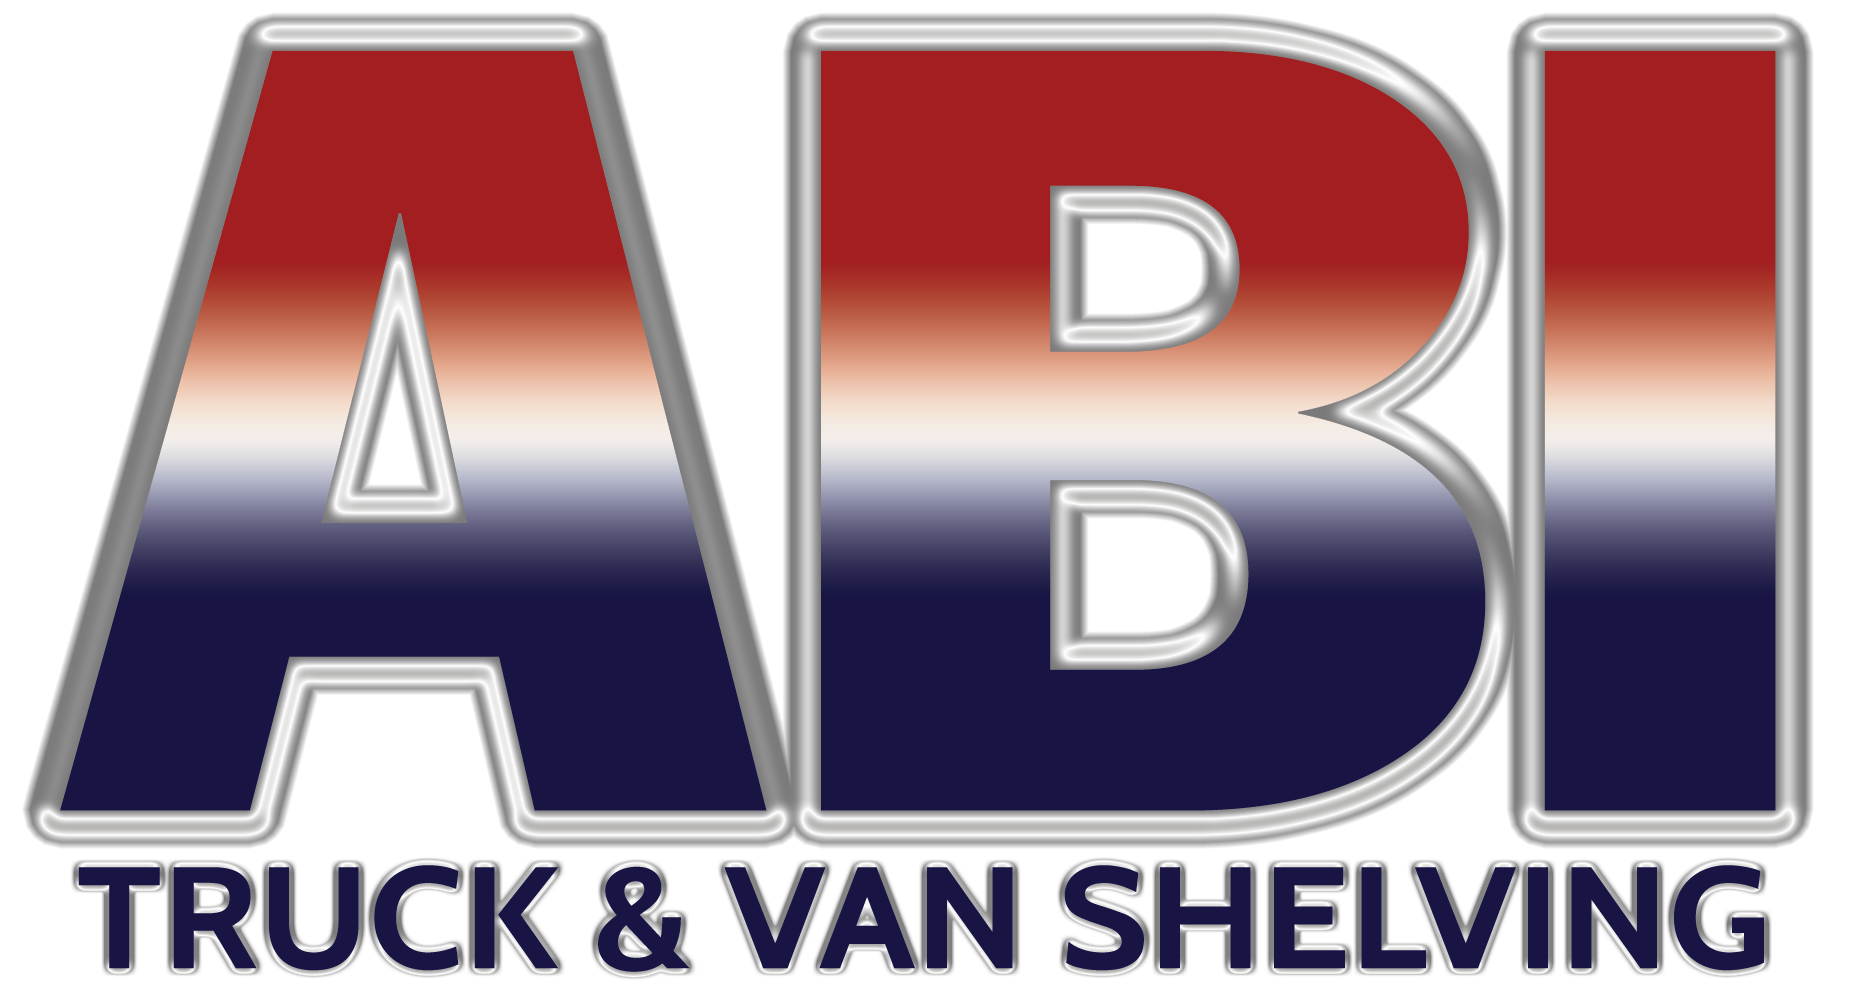 ABI Truck and Van Shelving